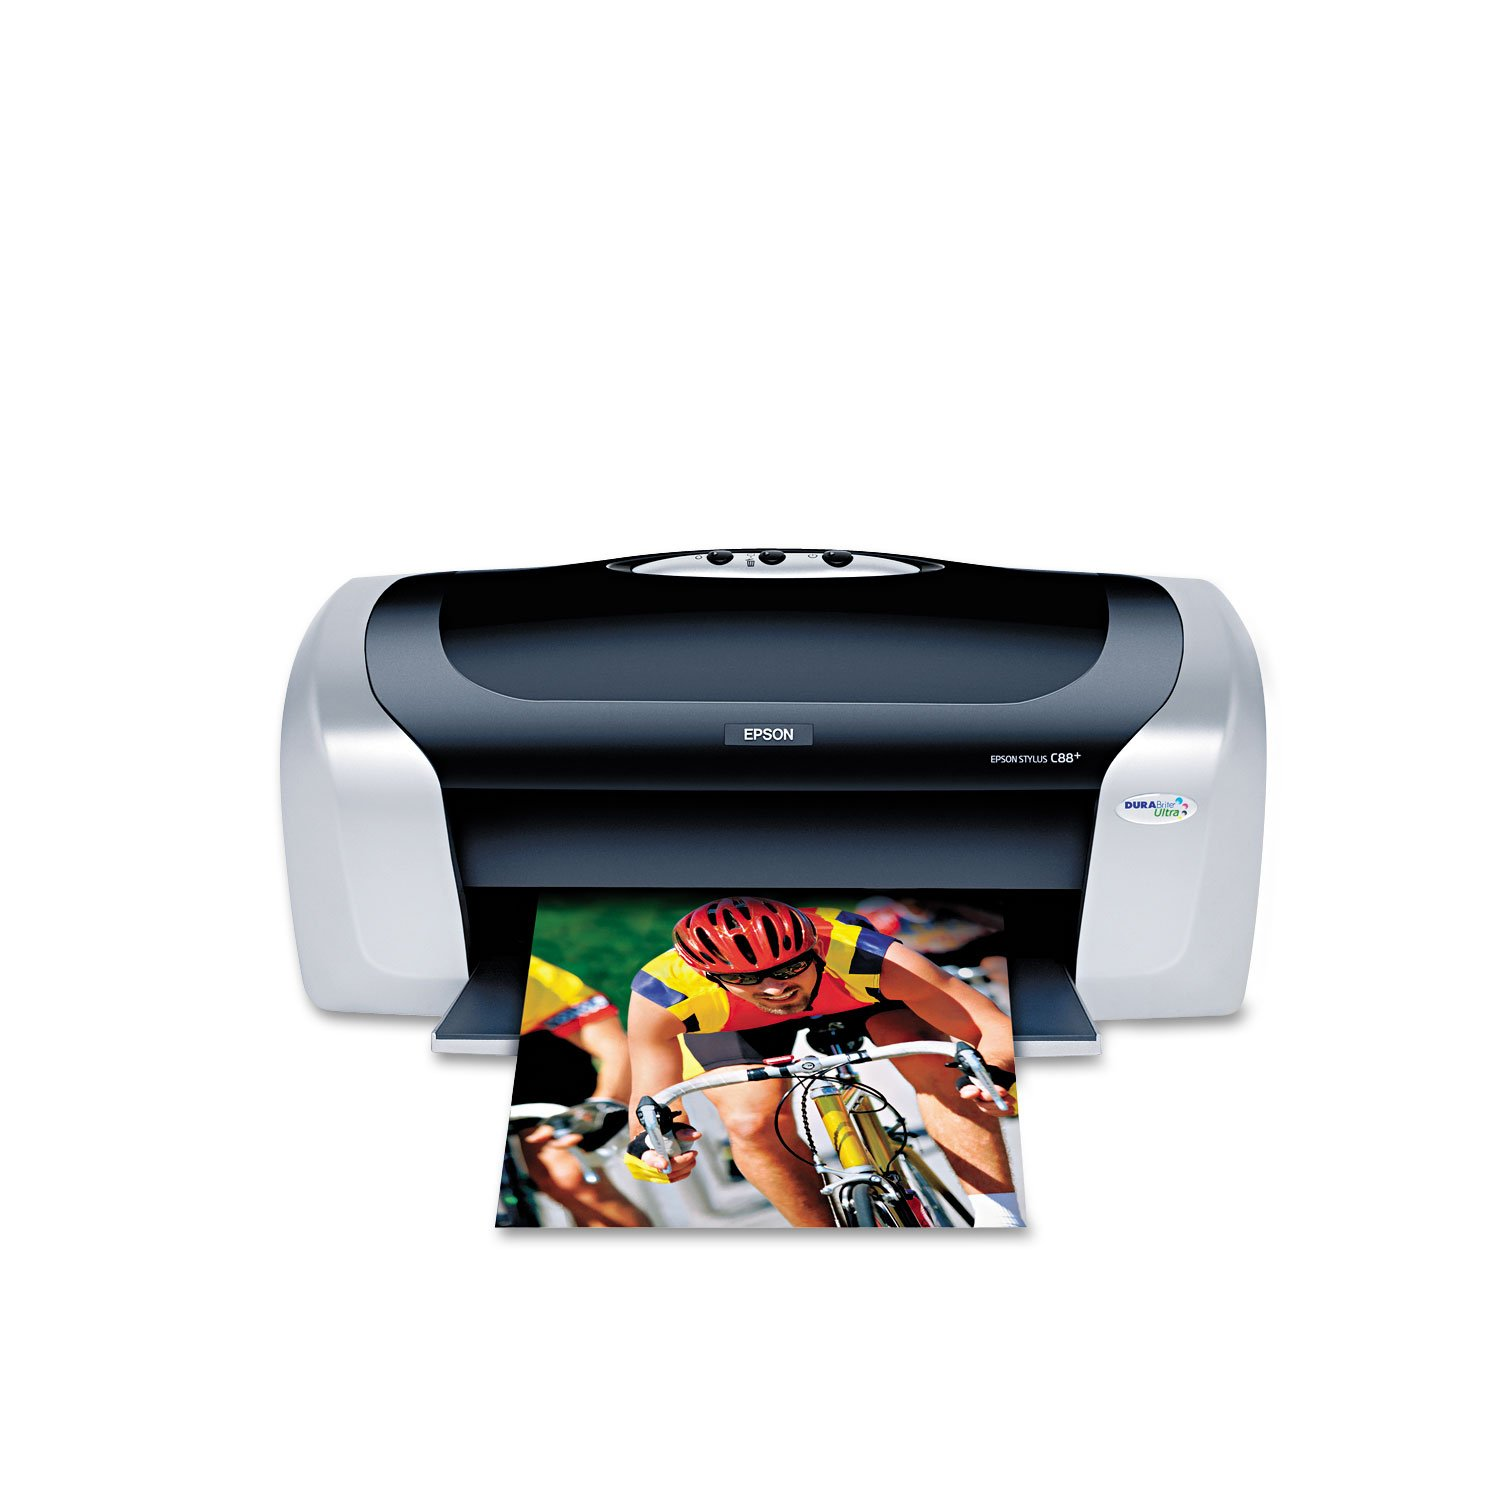 EPSON STYLUS C88 PRINTER DOWNLOAD DRIVER